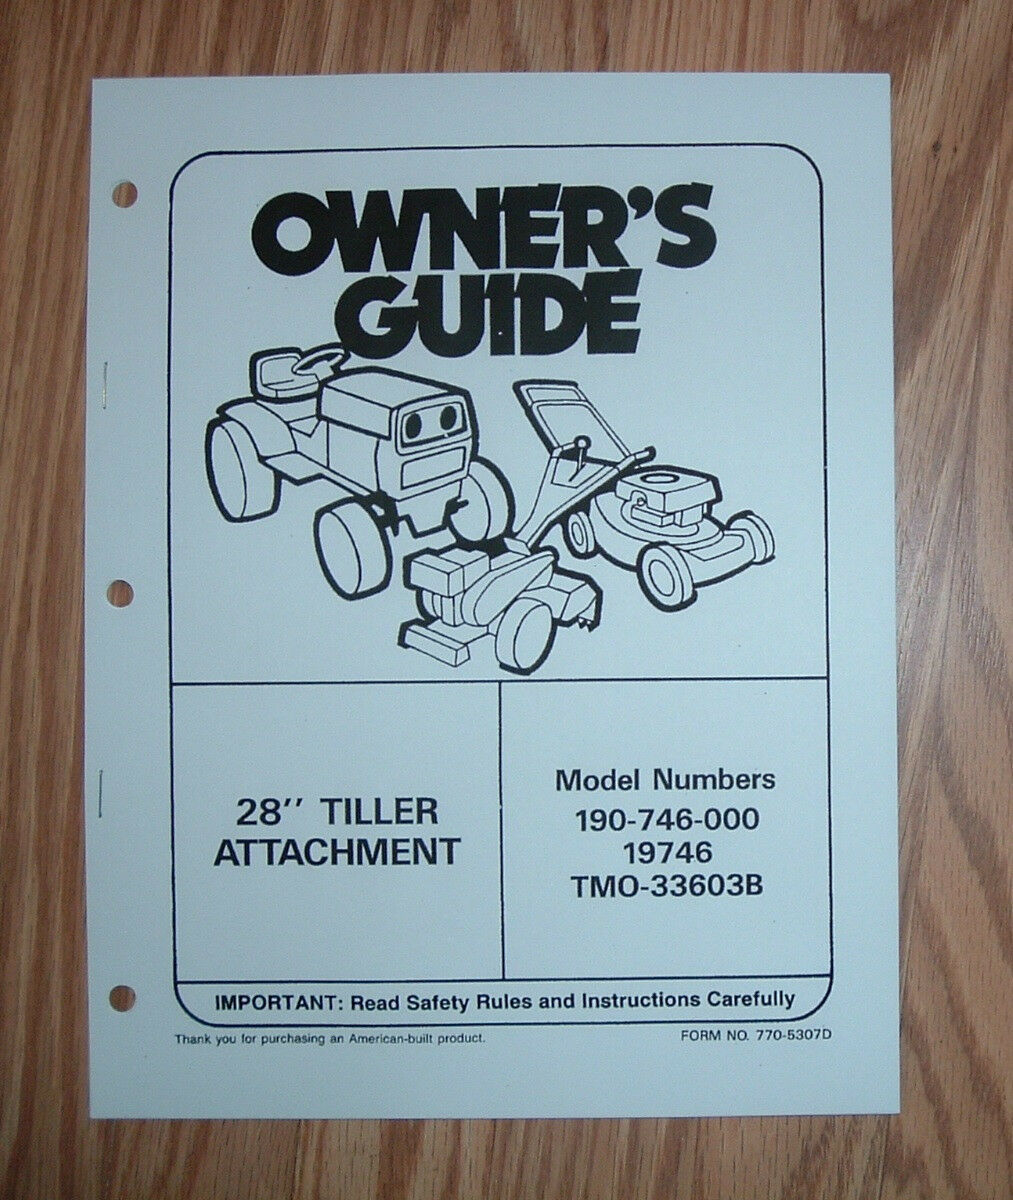 Mtd Snow Thrower Manual 314 610 - Enthusiast Wiring Diagrams •